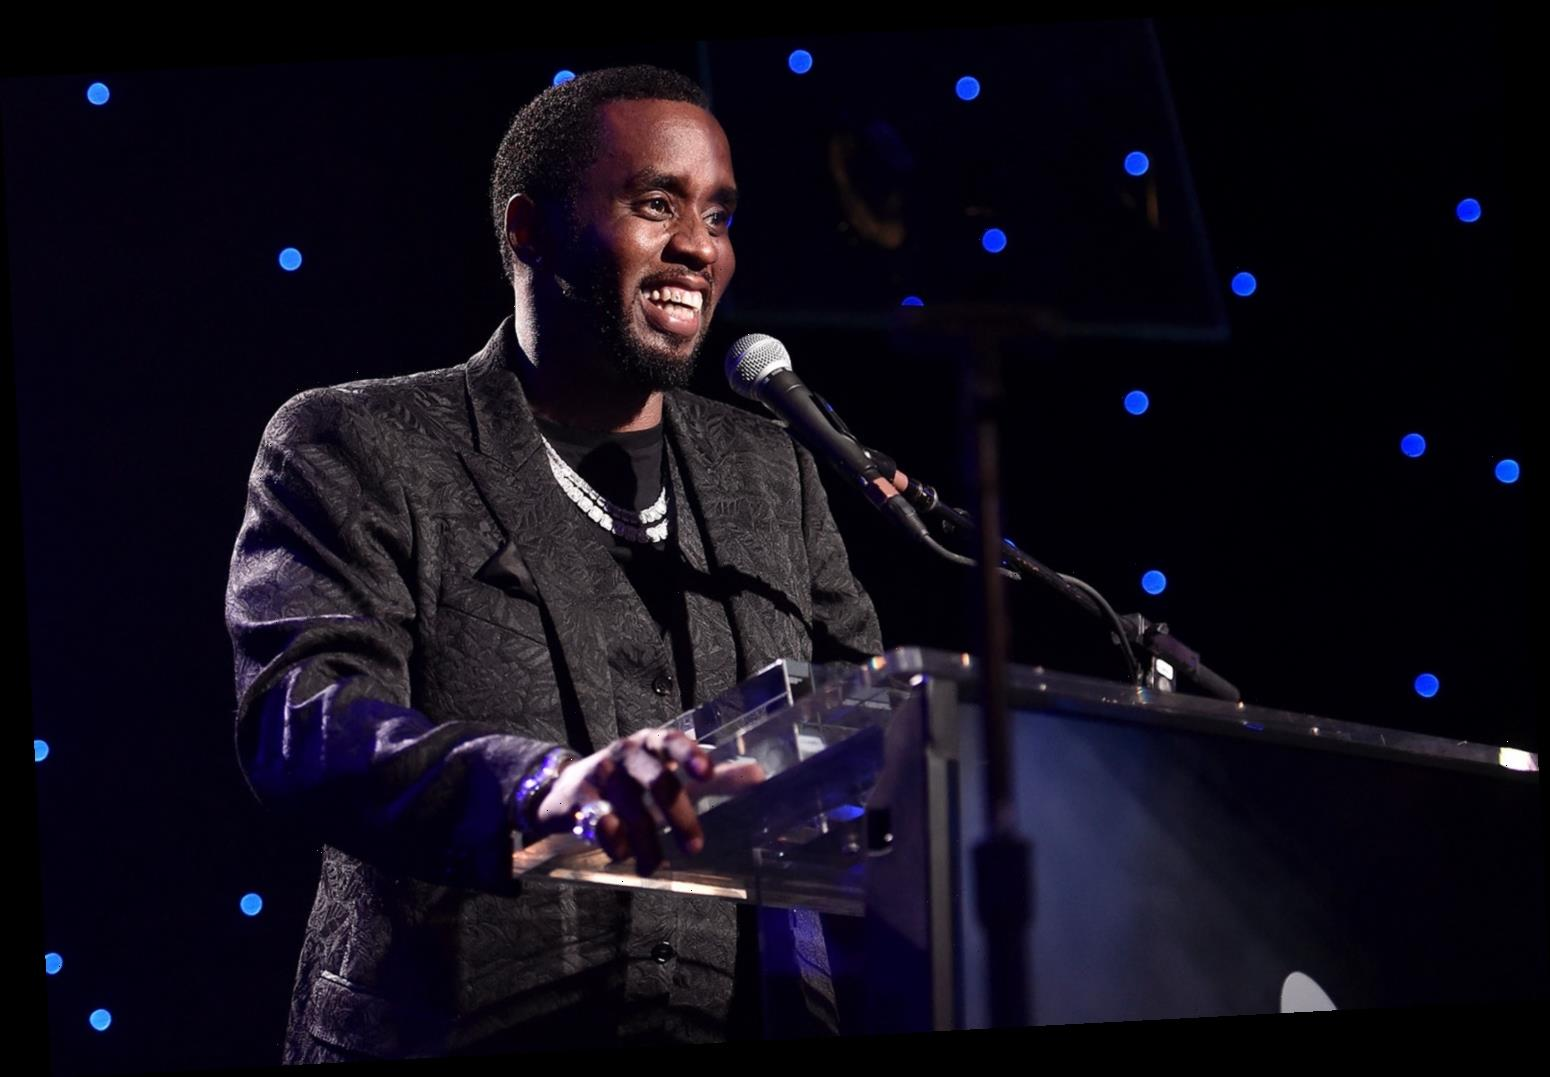 Diddy Decides to Skip Hosting His Annual New Year's Eve Party in 'Efforts to Keep Everyone Safe'